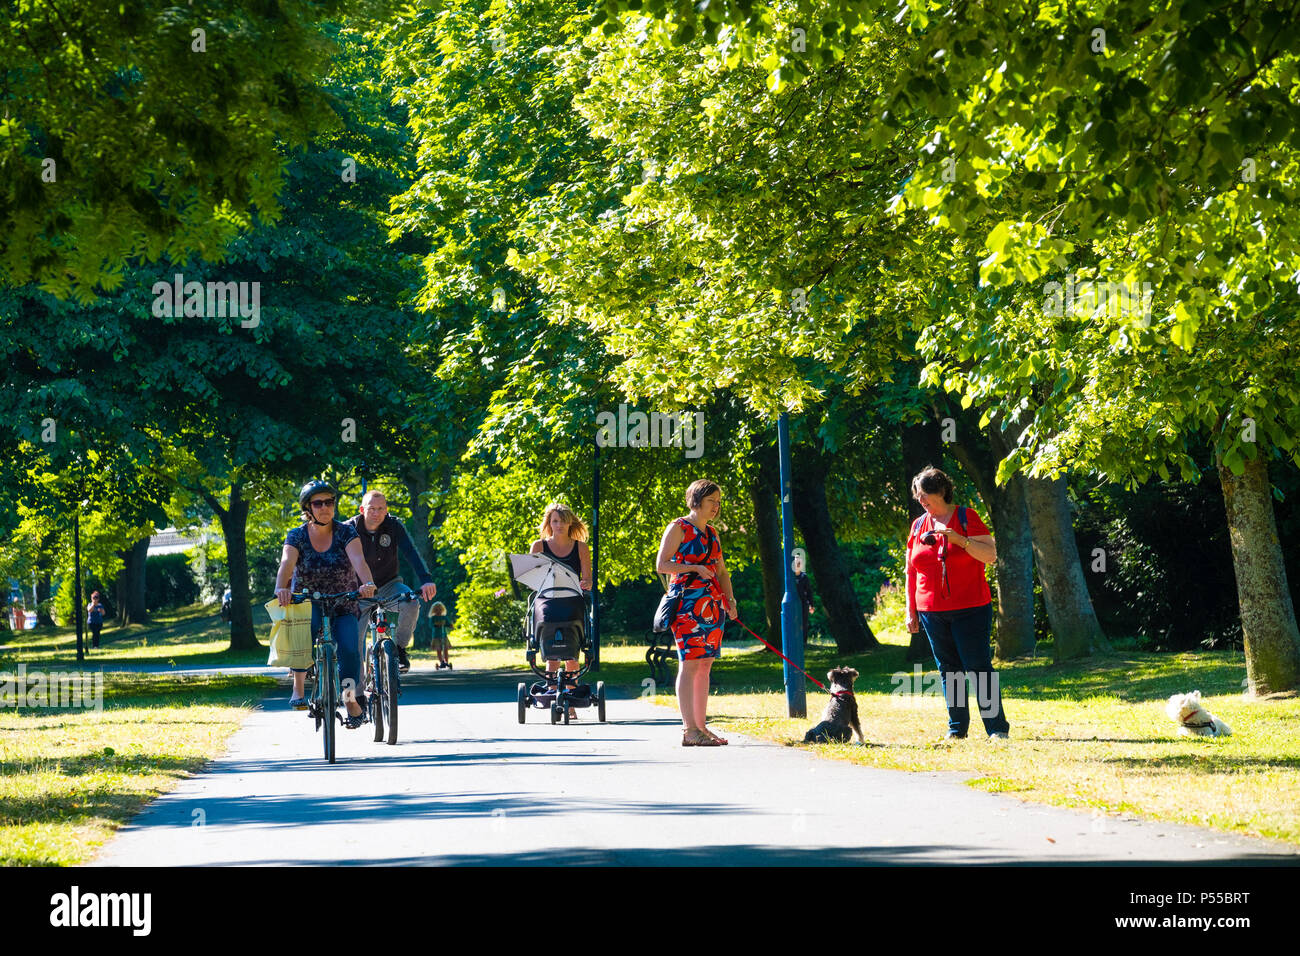 Aberystwyth, Wales, UK. 25th June, 2018.   UK Weather:  People walking and cycling along the tree lined Plas Crug park in Aberystwyth, at the start of what promises to be yet another scintillating day of hot unbroken sunshine.  The UK is heading  into a mini heatwave, with temperatures forecast to hit 29º or 30º Celsius by the middle of the week  photo © Keith Morris / Alamy Live News Stock Photo